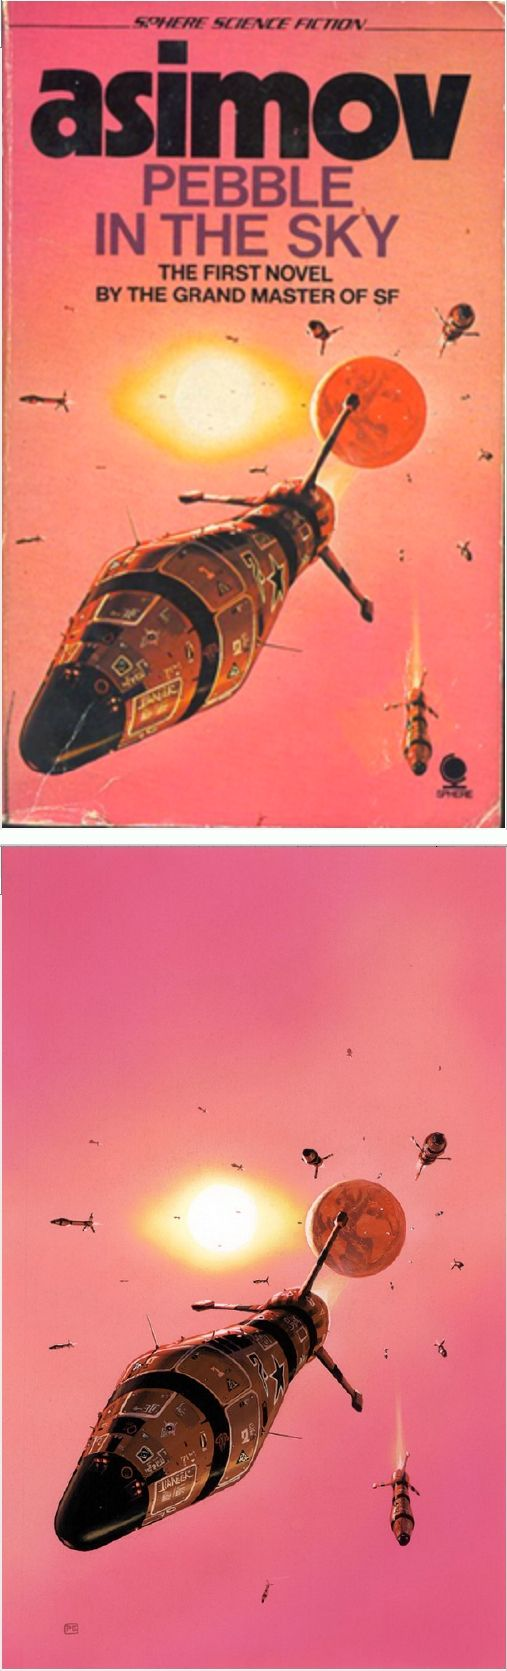 PETER ELSON - Pebble in the Sky by Isaac Asimov - 1974 Sphere Books - cover by isfdb - print by returntofleet.com